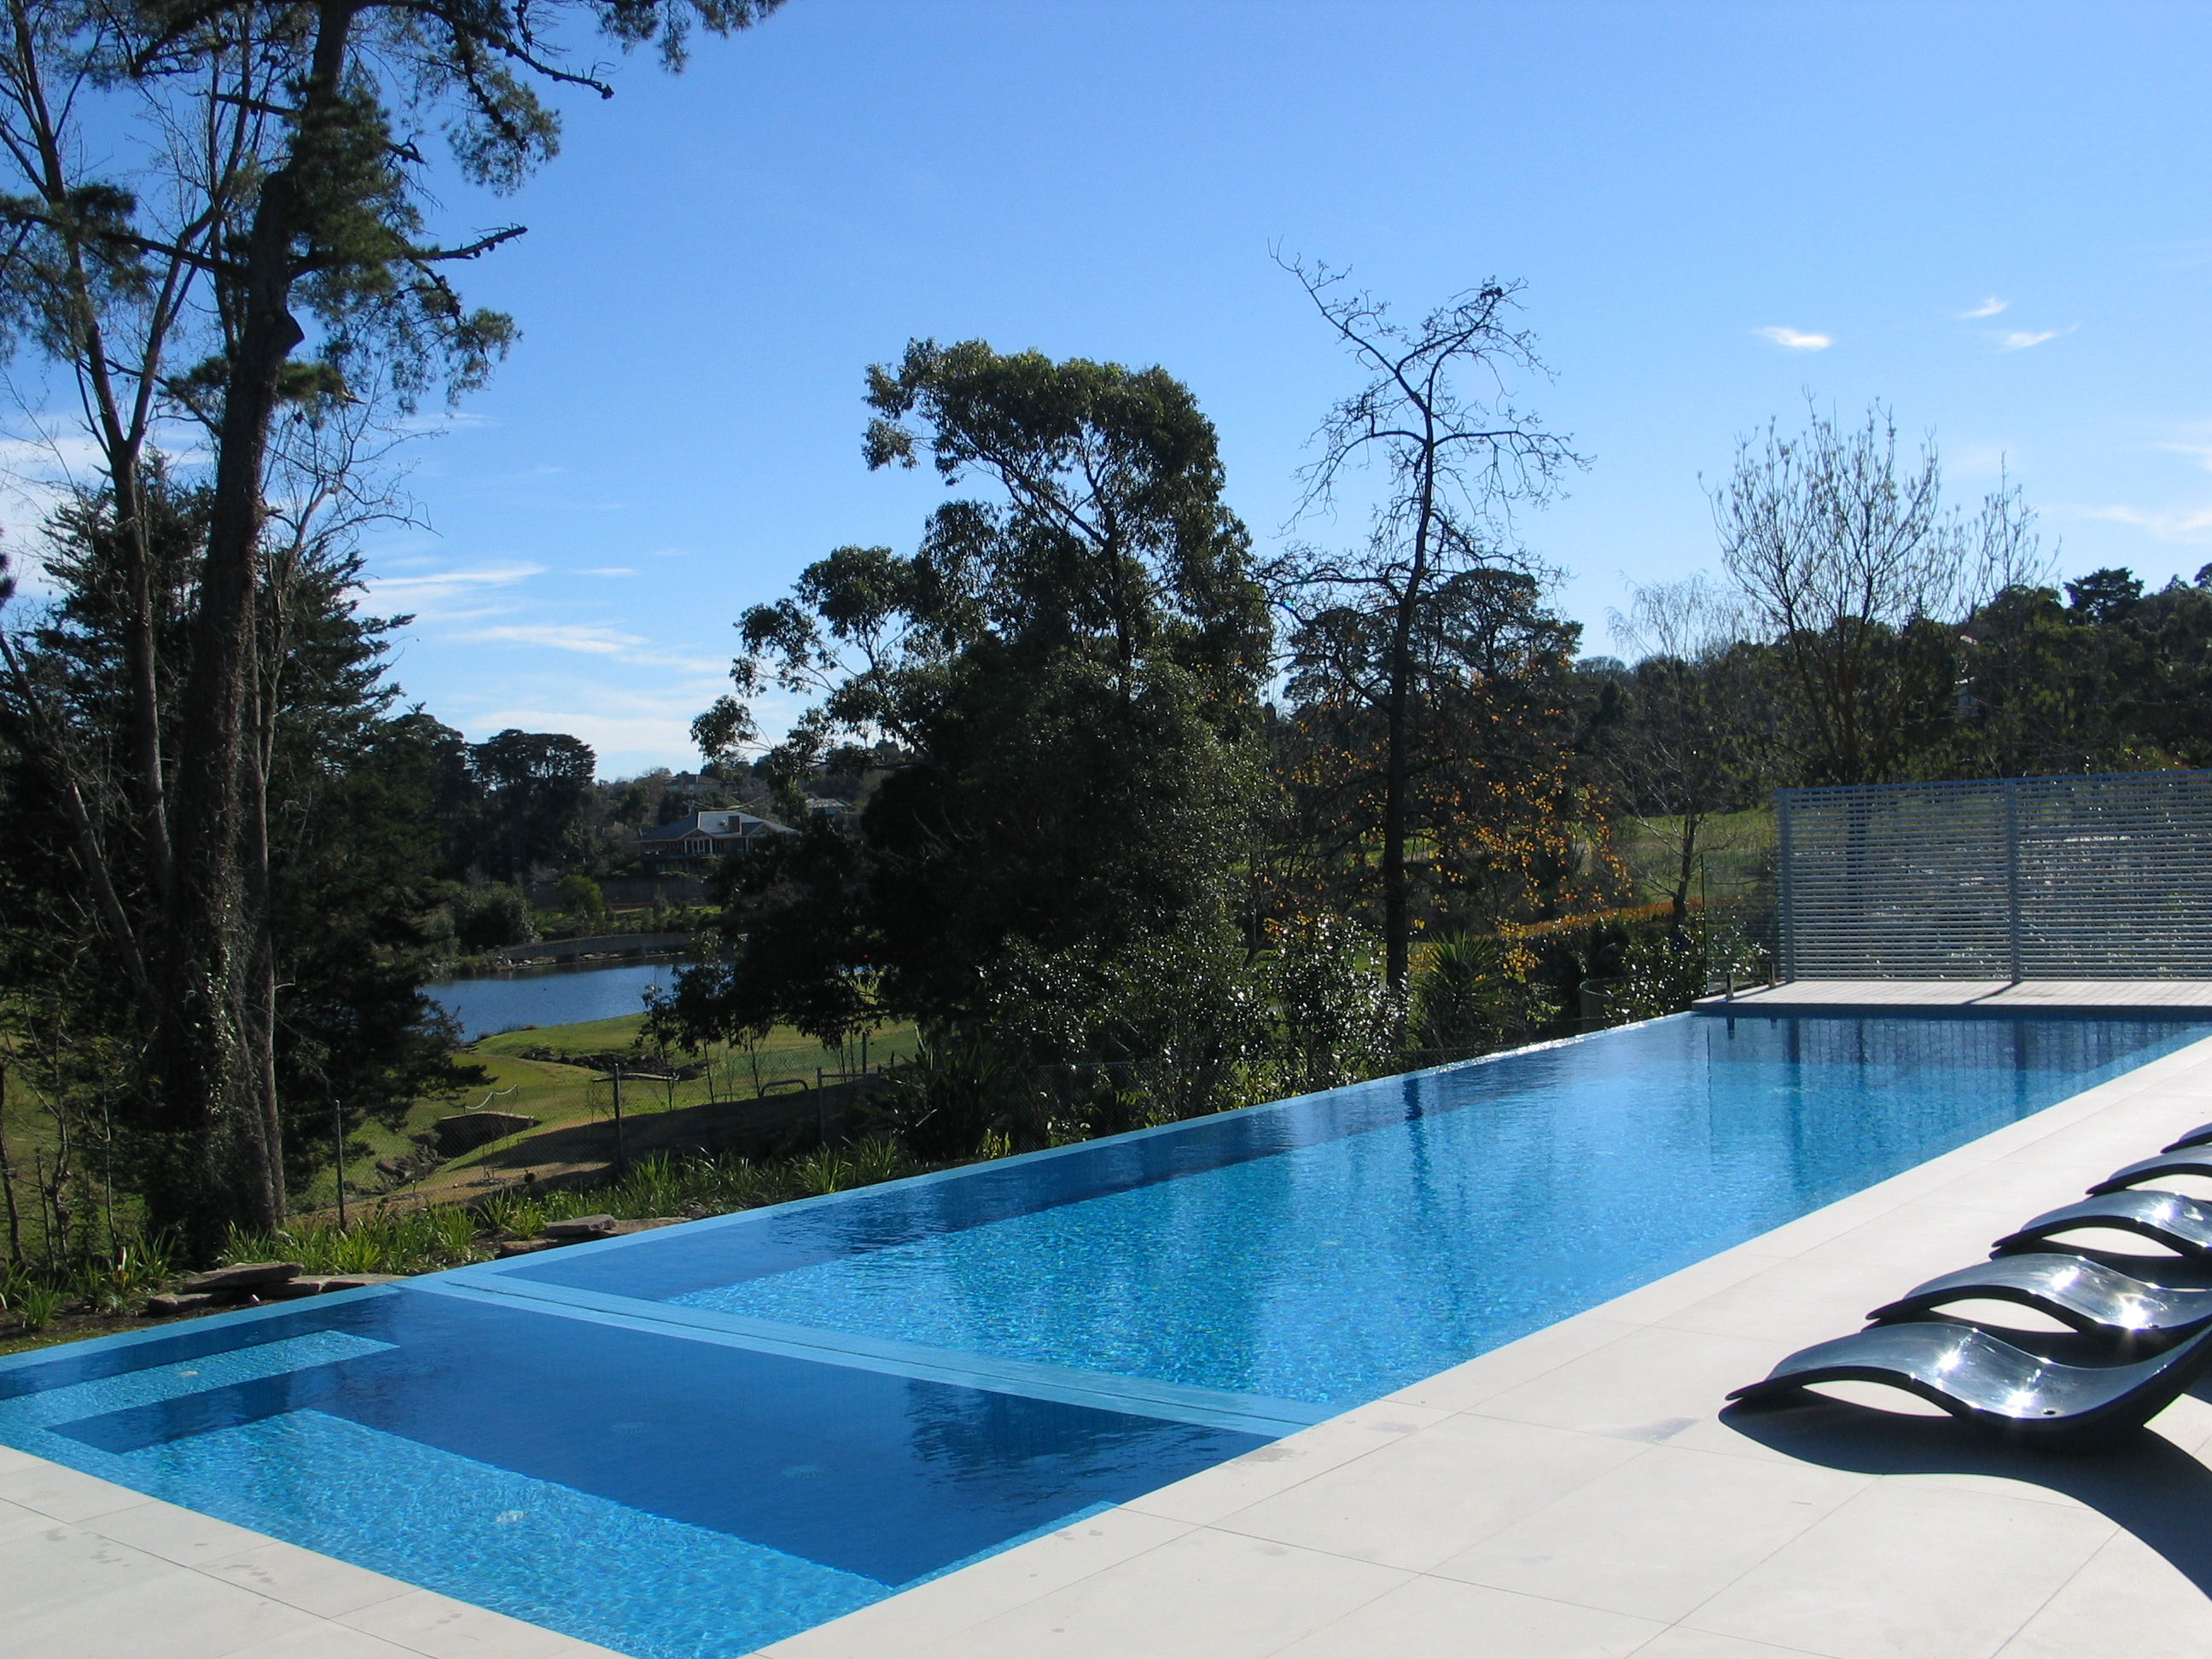 Infinity pool designs pool cost pictures of inground for Pool edges design